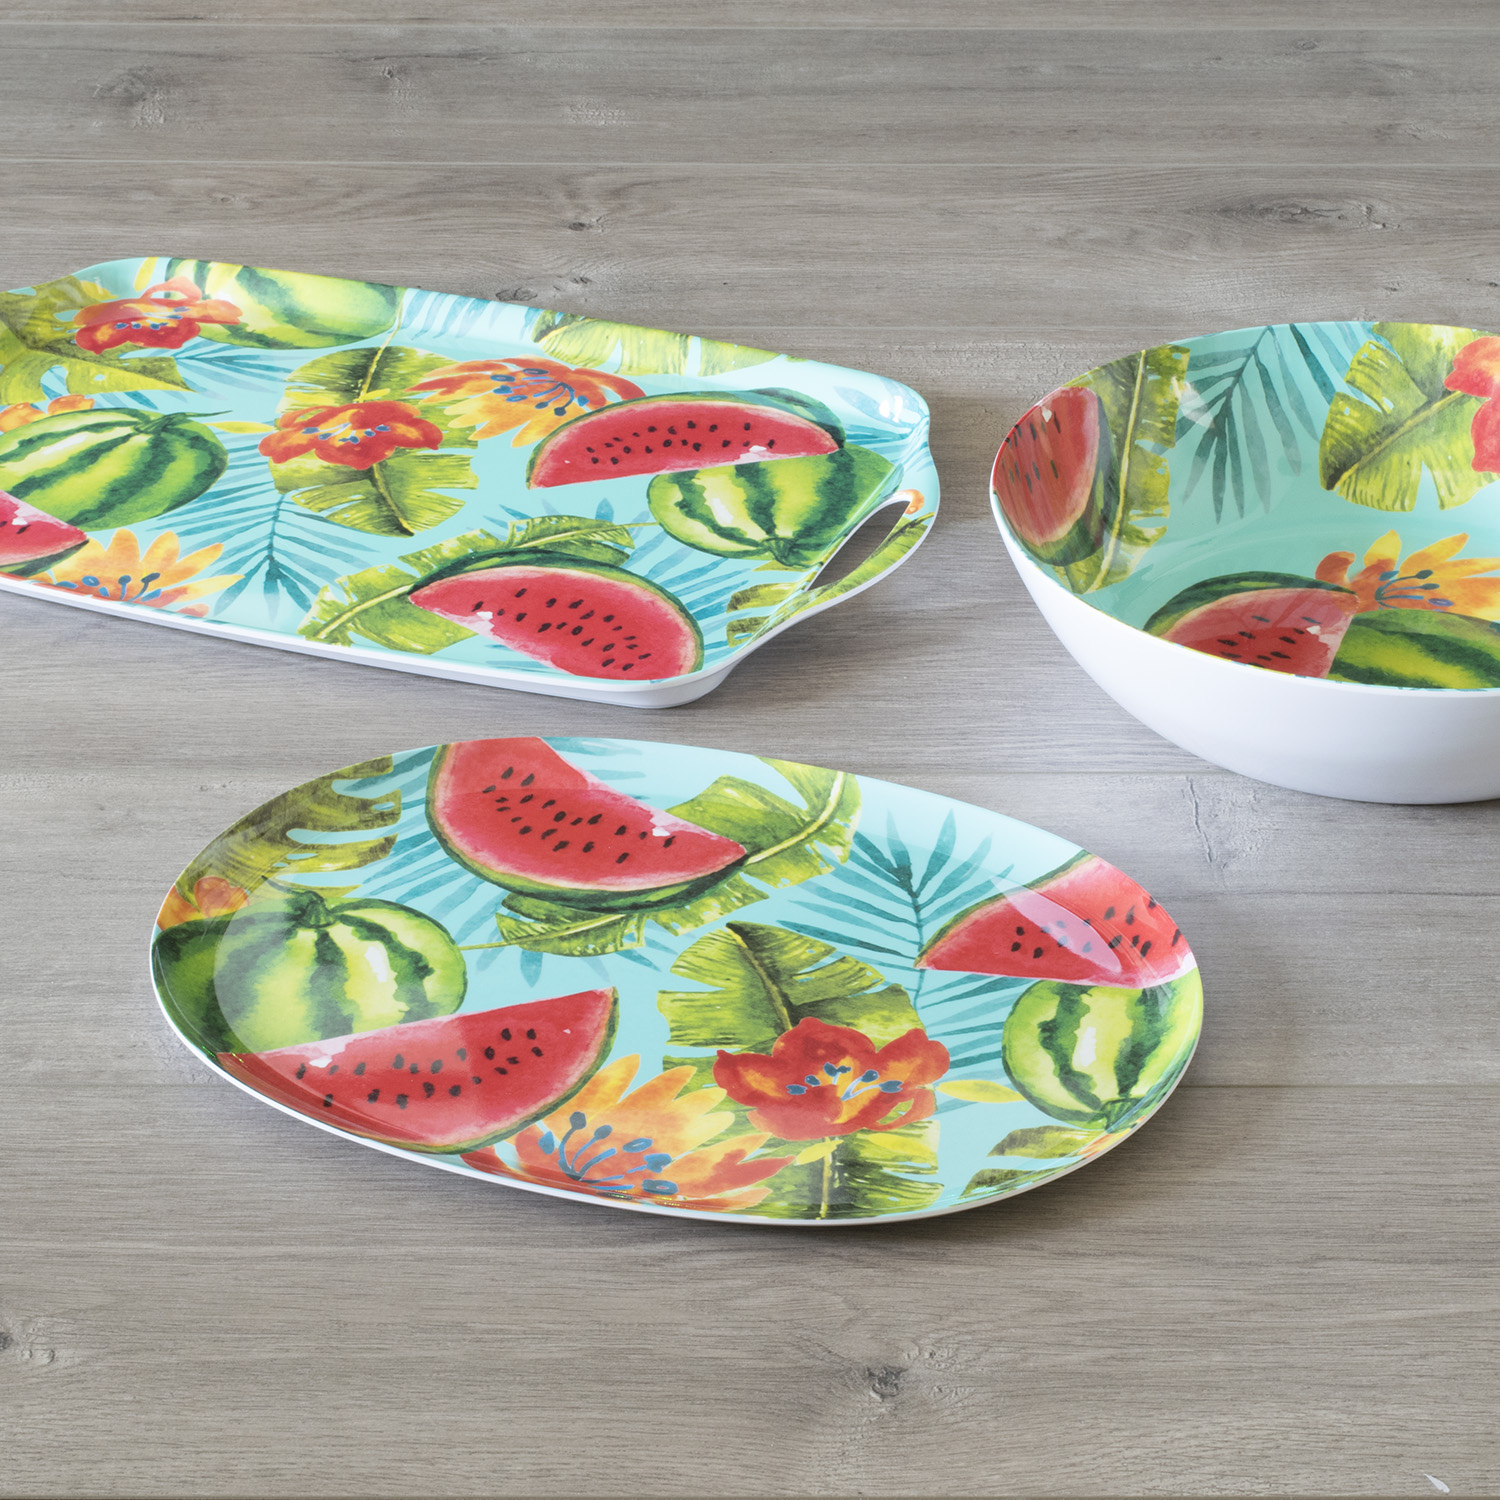 Mainstays - Watermelon 3 pieces Serving Set